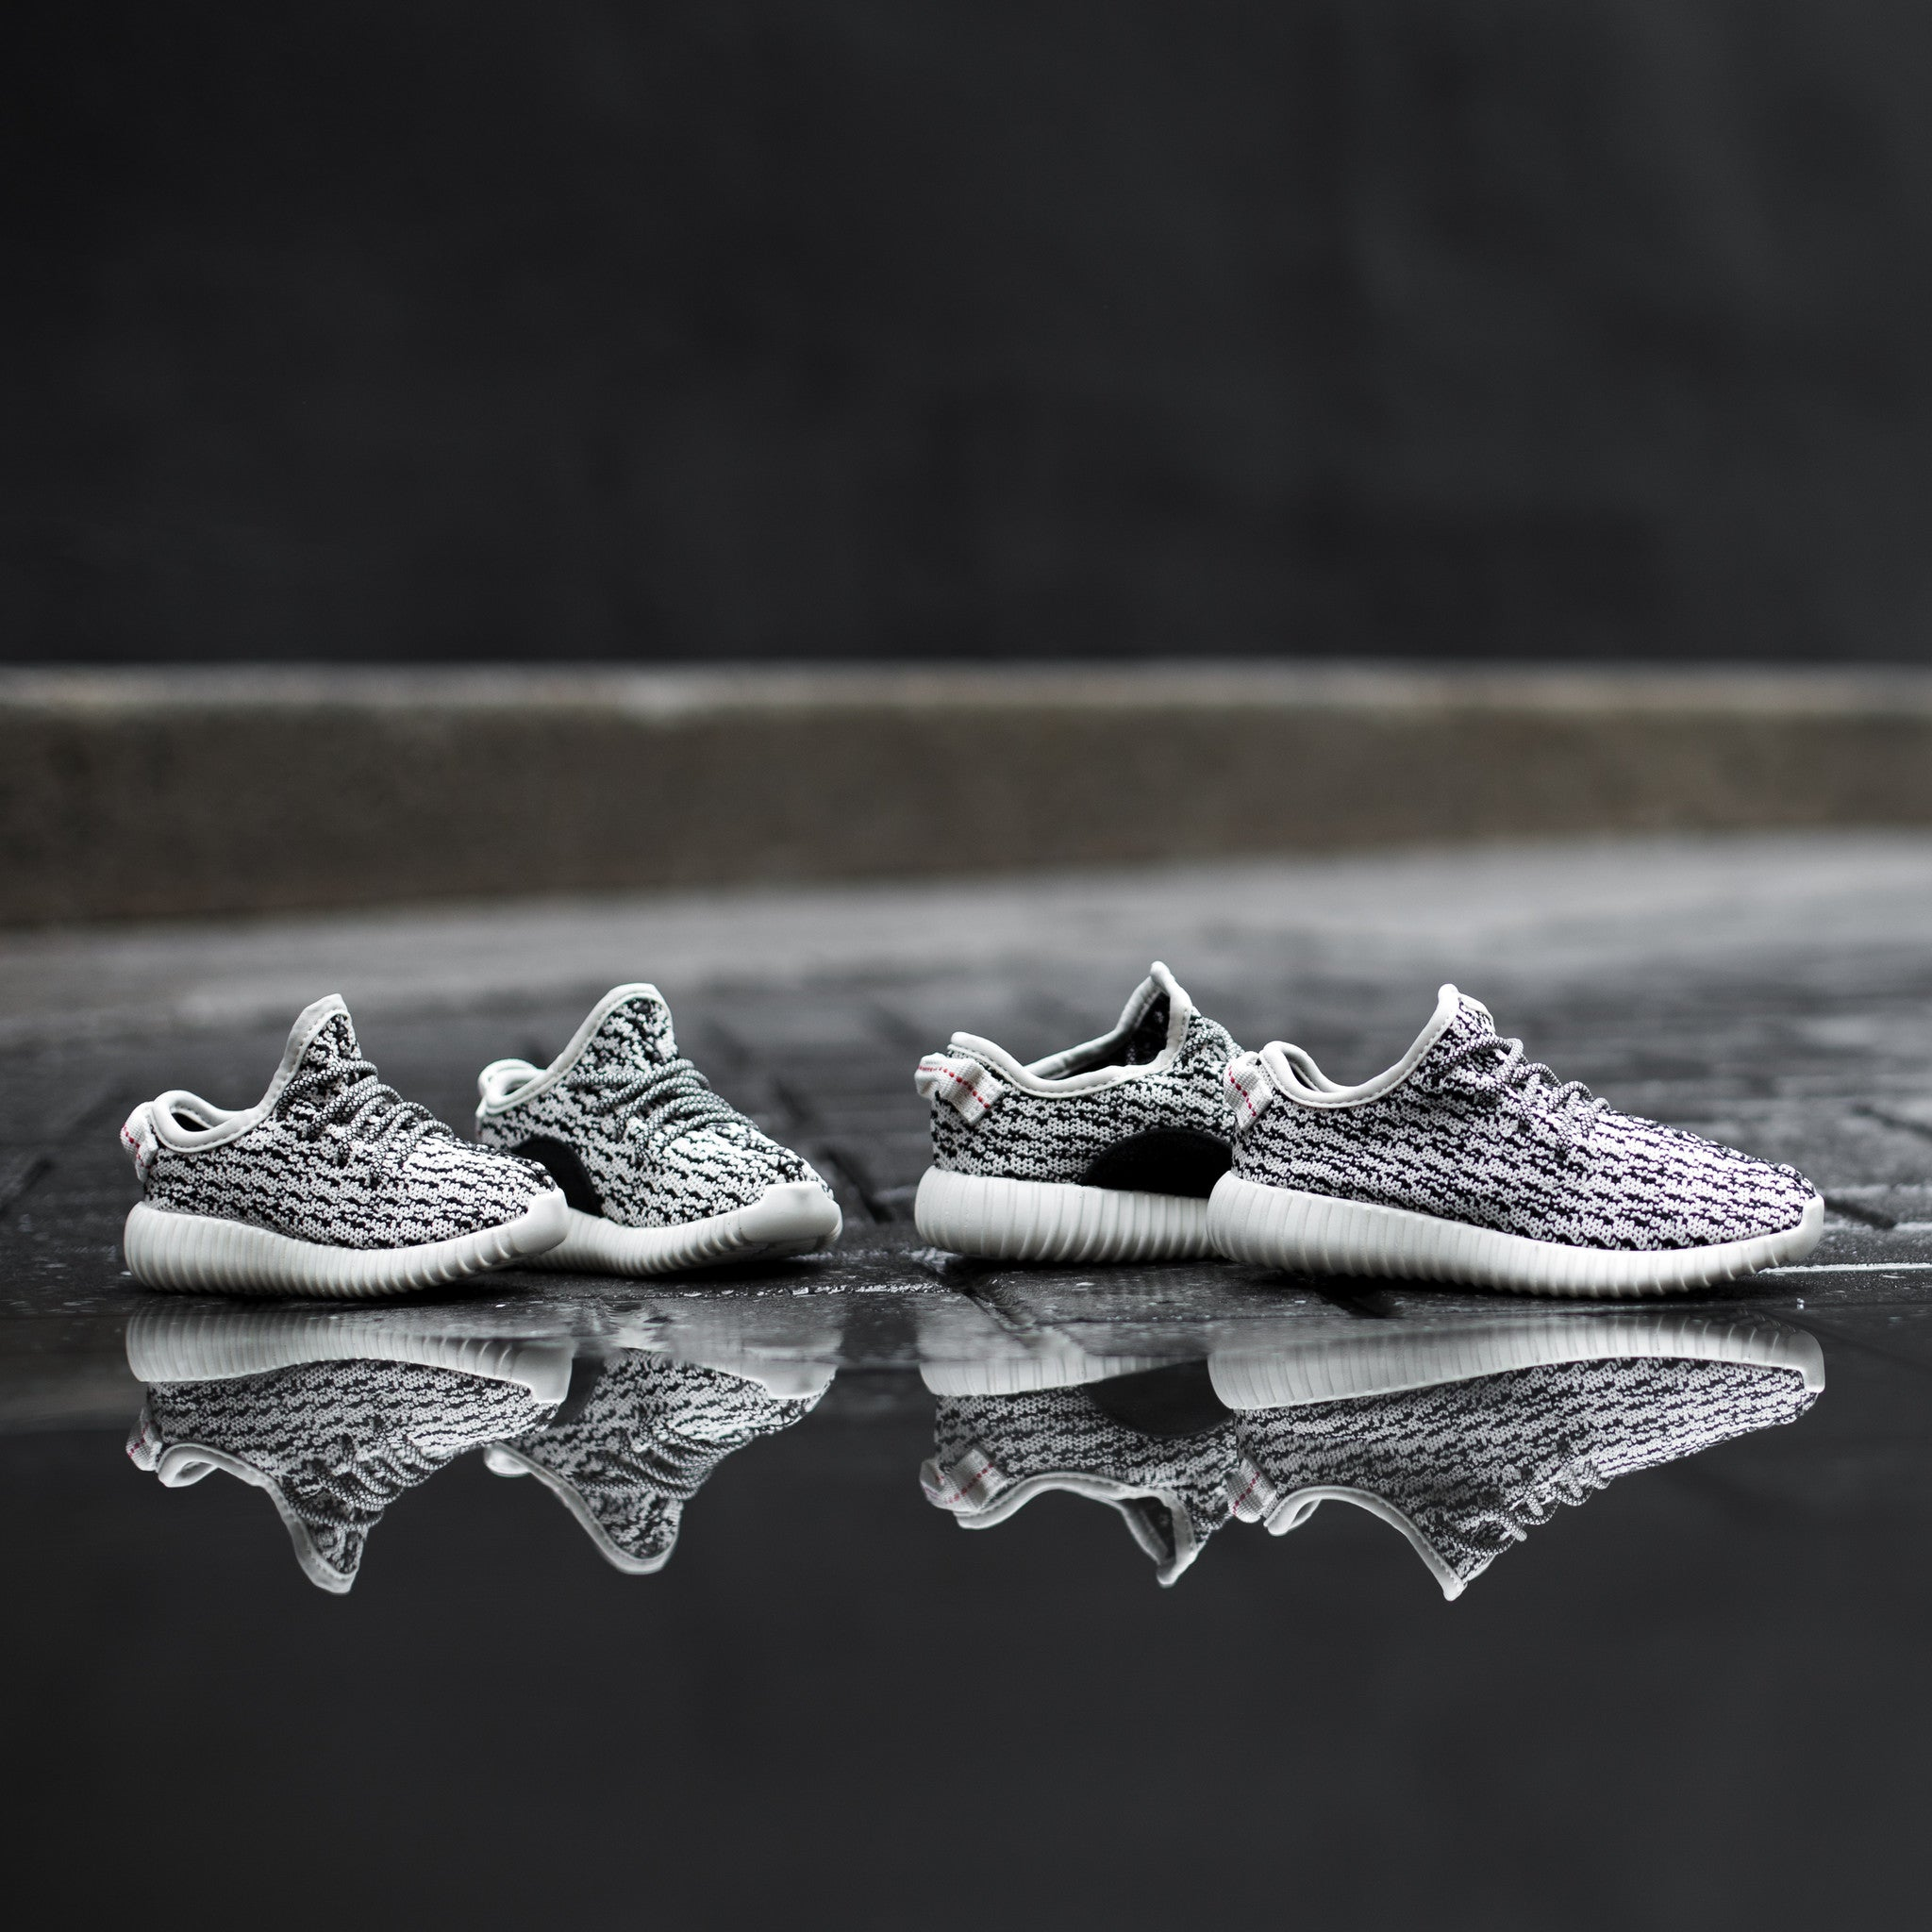 YEEZY 350 BOOST INFANT release info